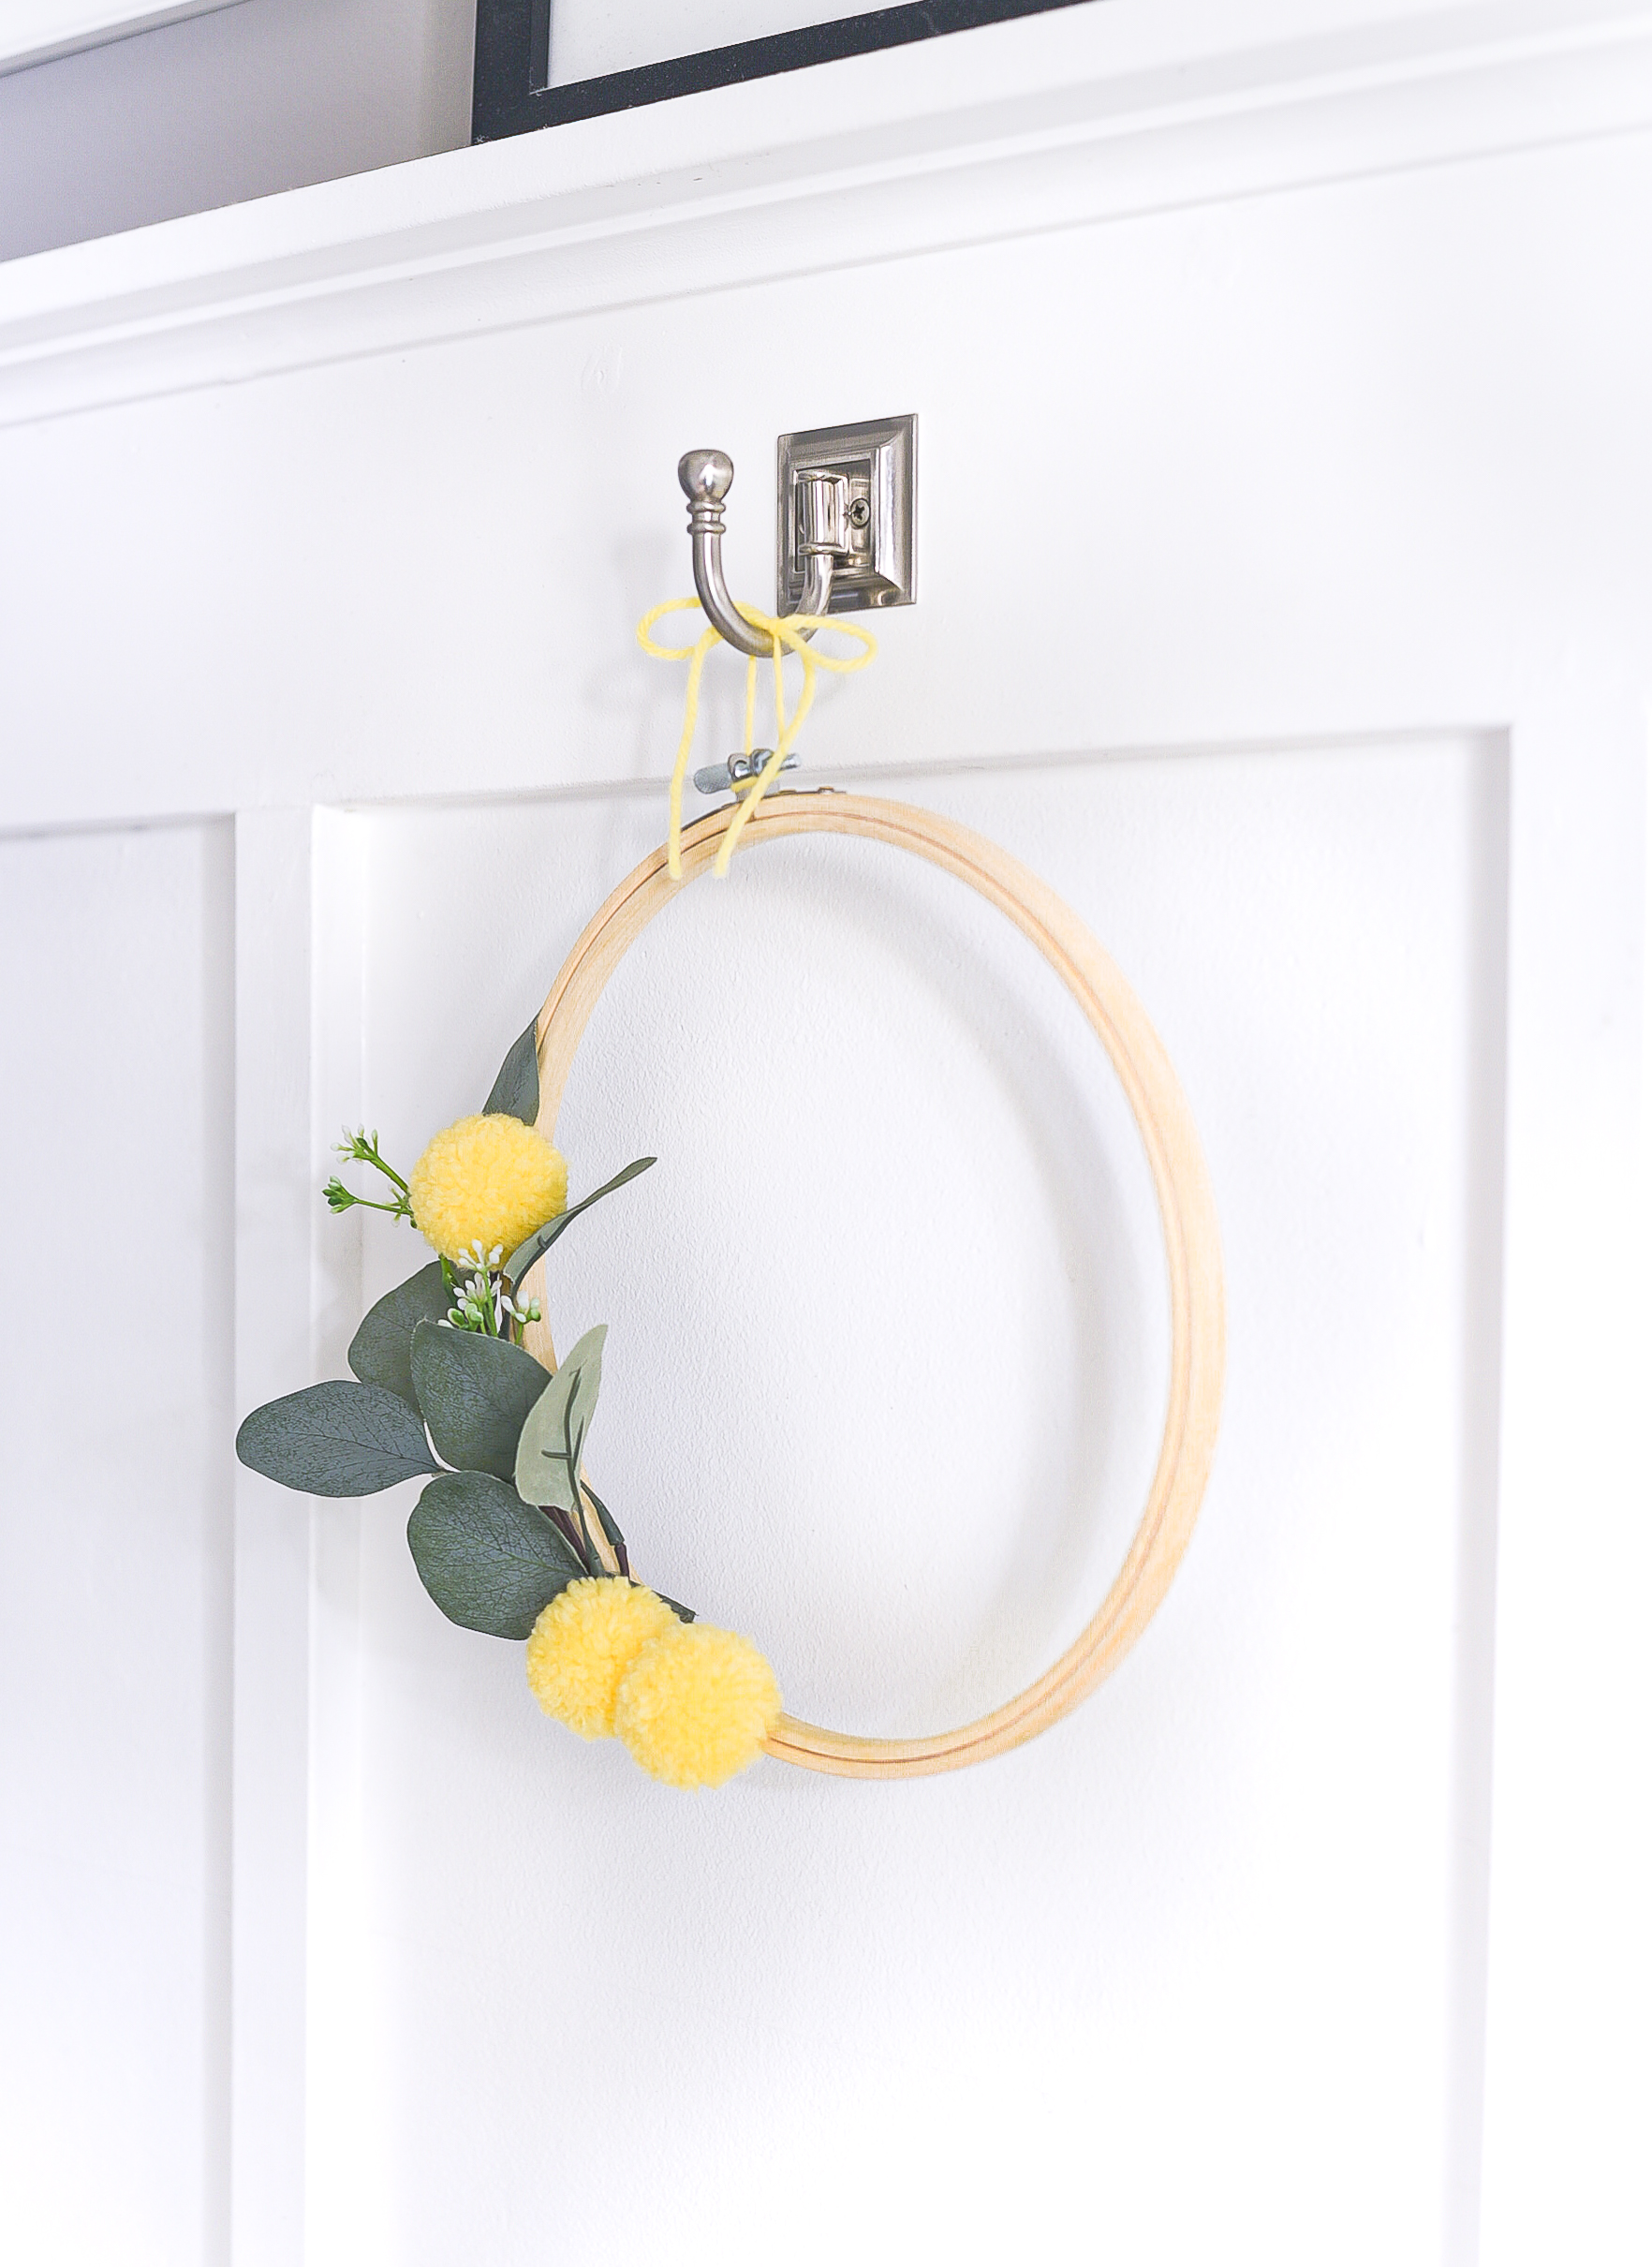 Embroidery Hoop Wreath with Faux Billy Ball Pom Poms - Yellow Summer Wreath Idea. Summer Embroidery Hoop Wreath with Faux Bill Ball Pom Poms.